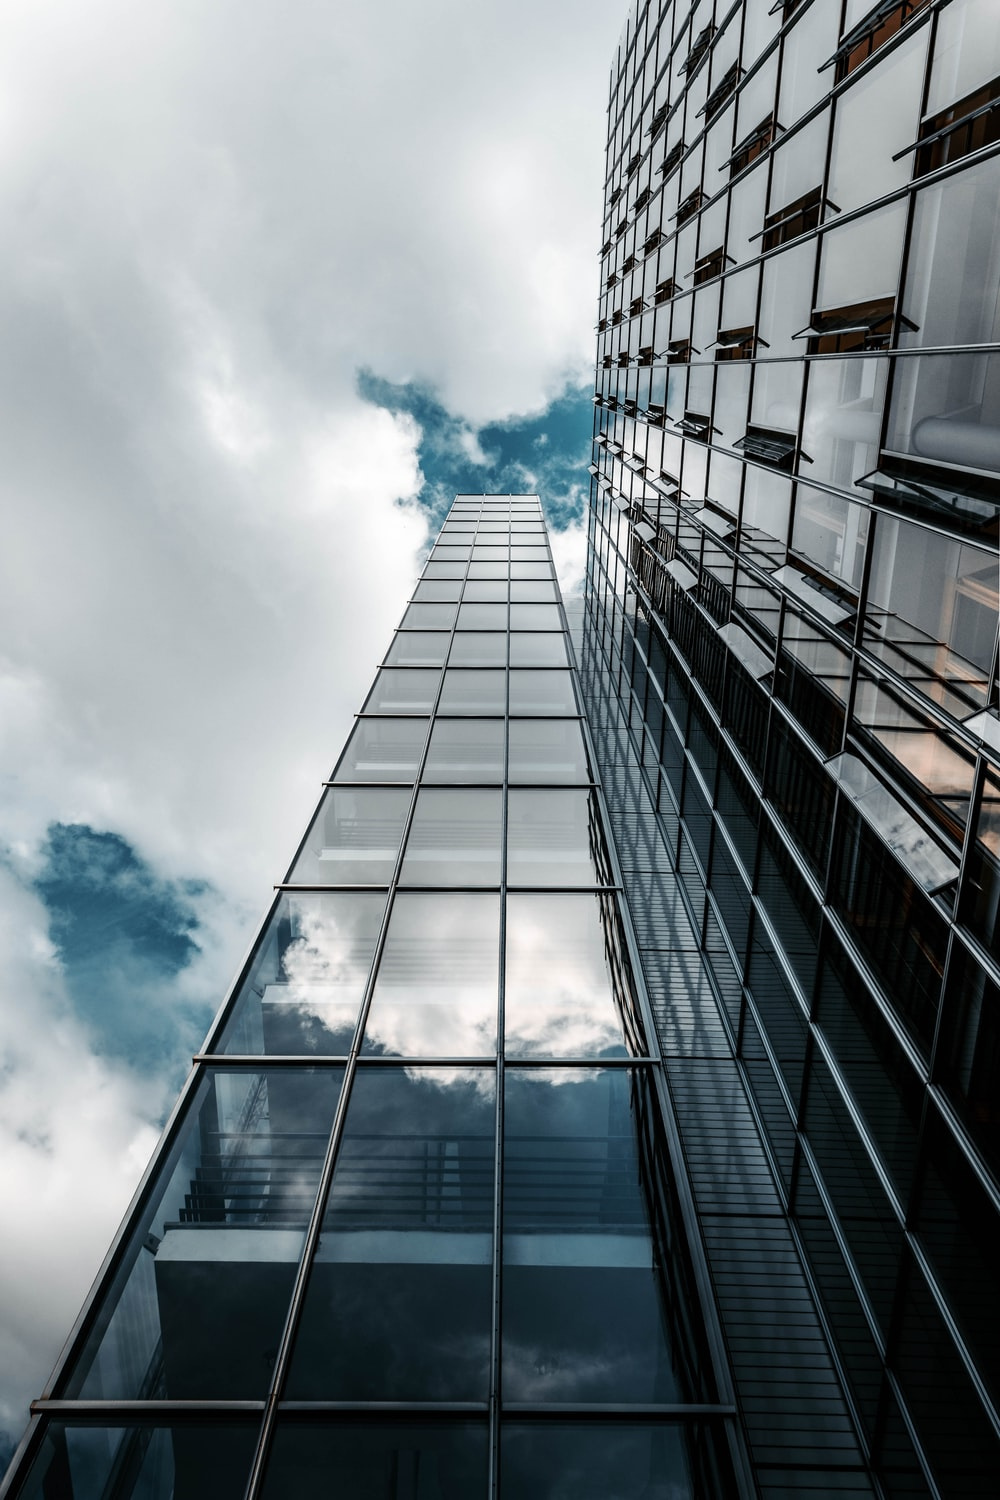 low angle photography of high rise building under cloudy sky